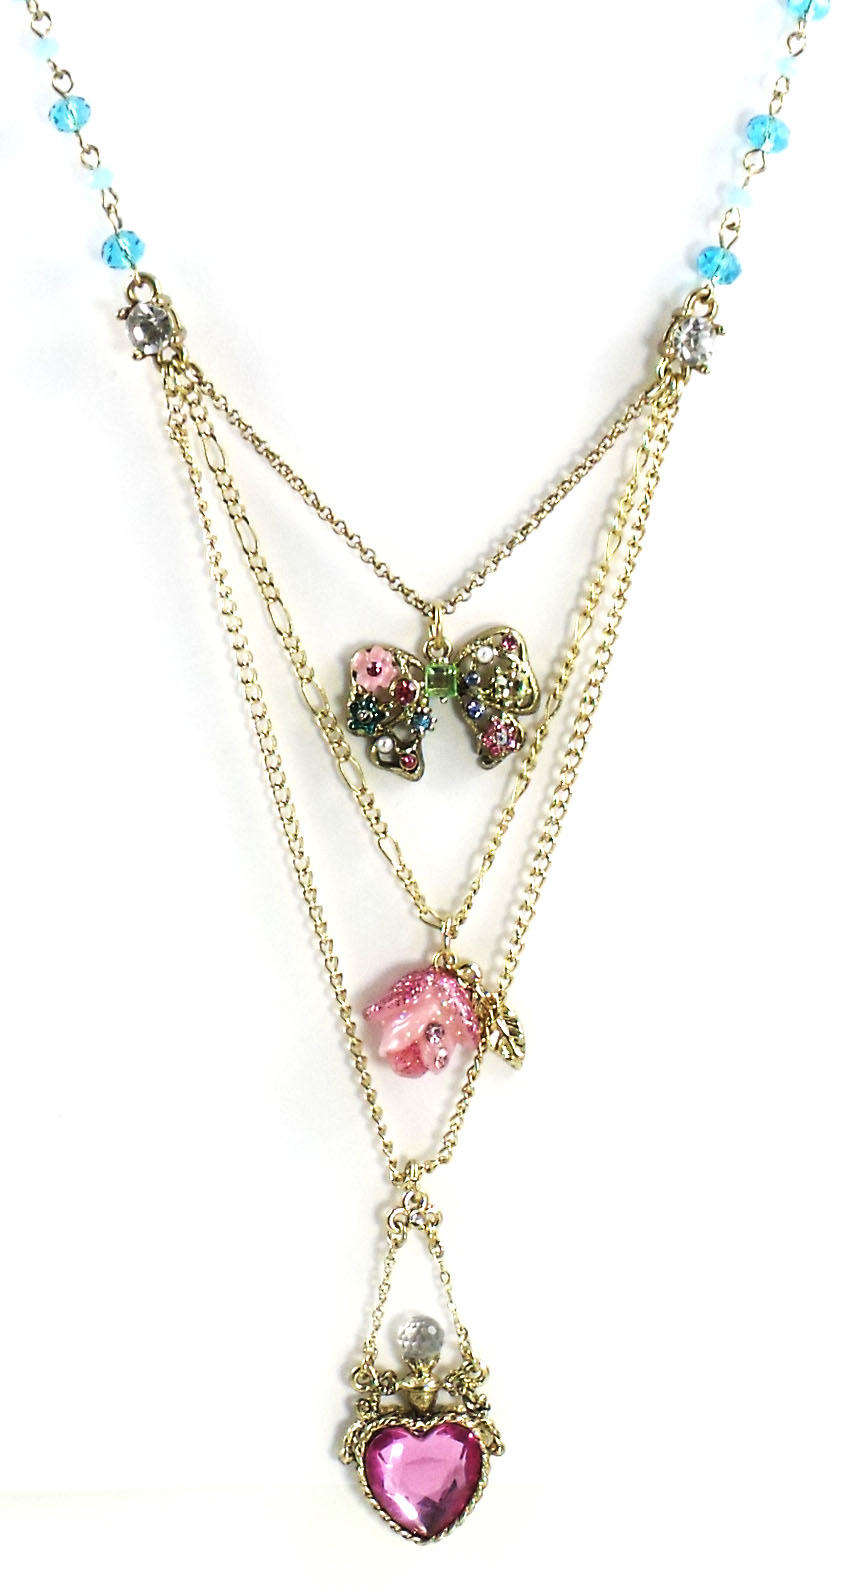 Betsey Johnson Jewelry FAIRYLAND Heart Rose Bow Necklace